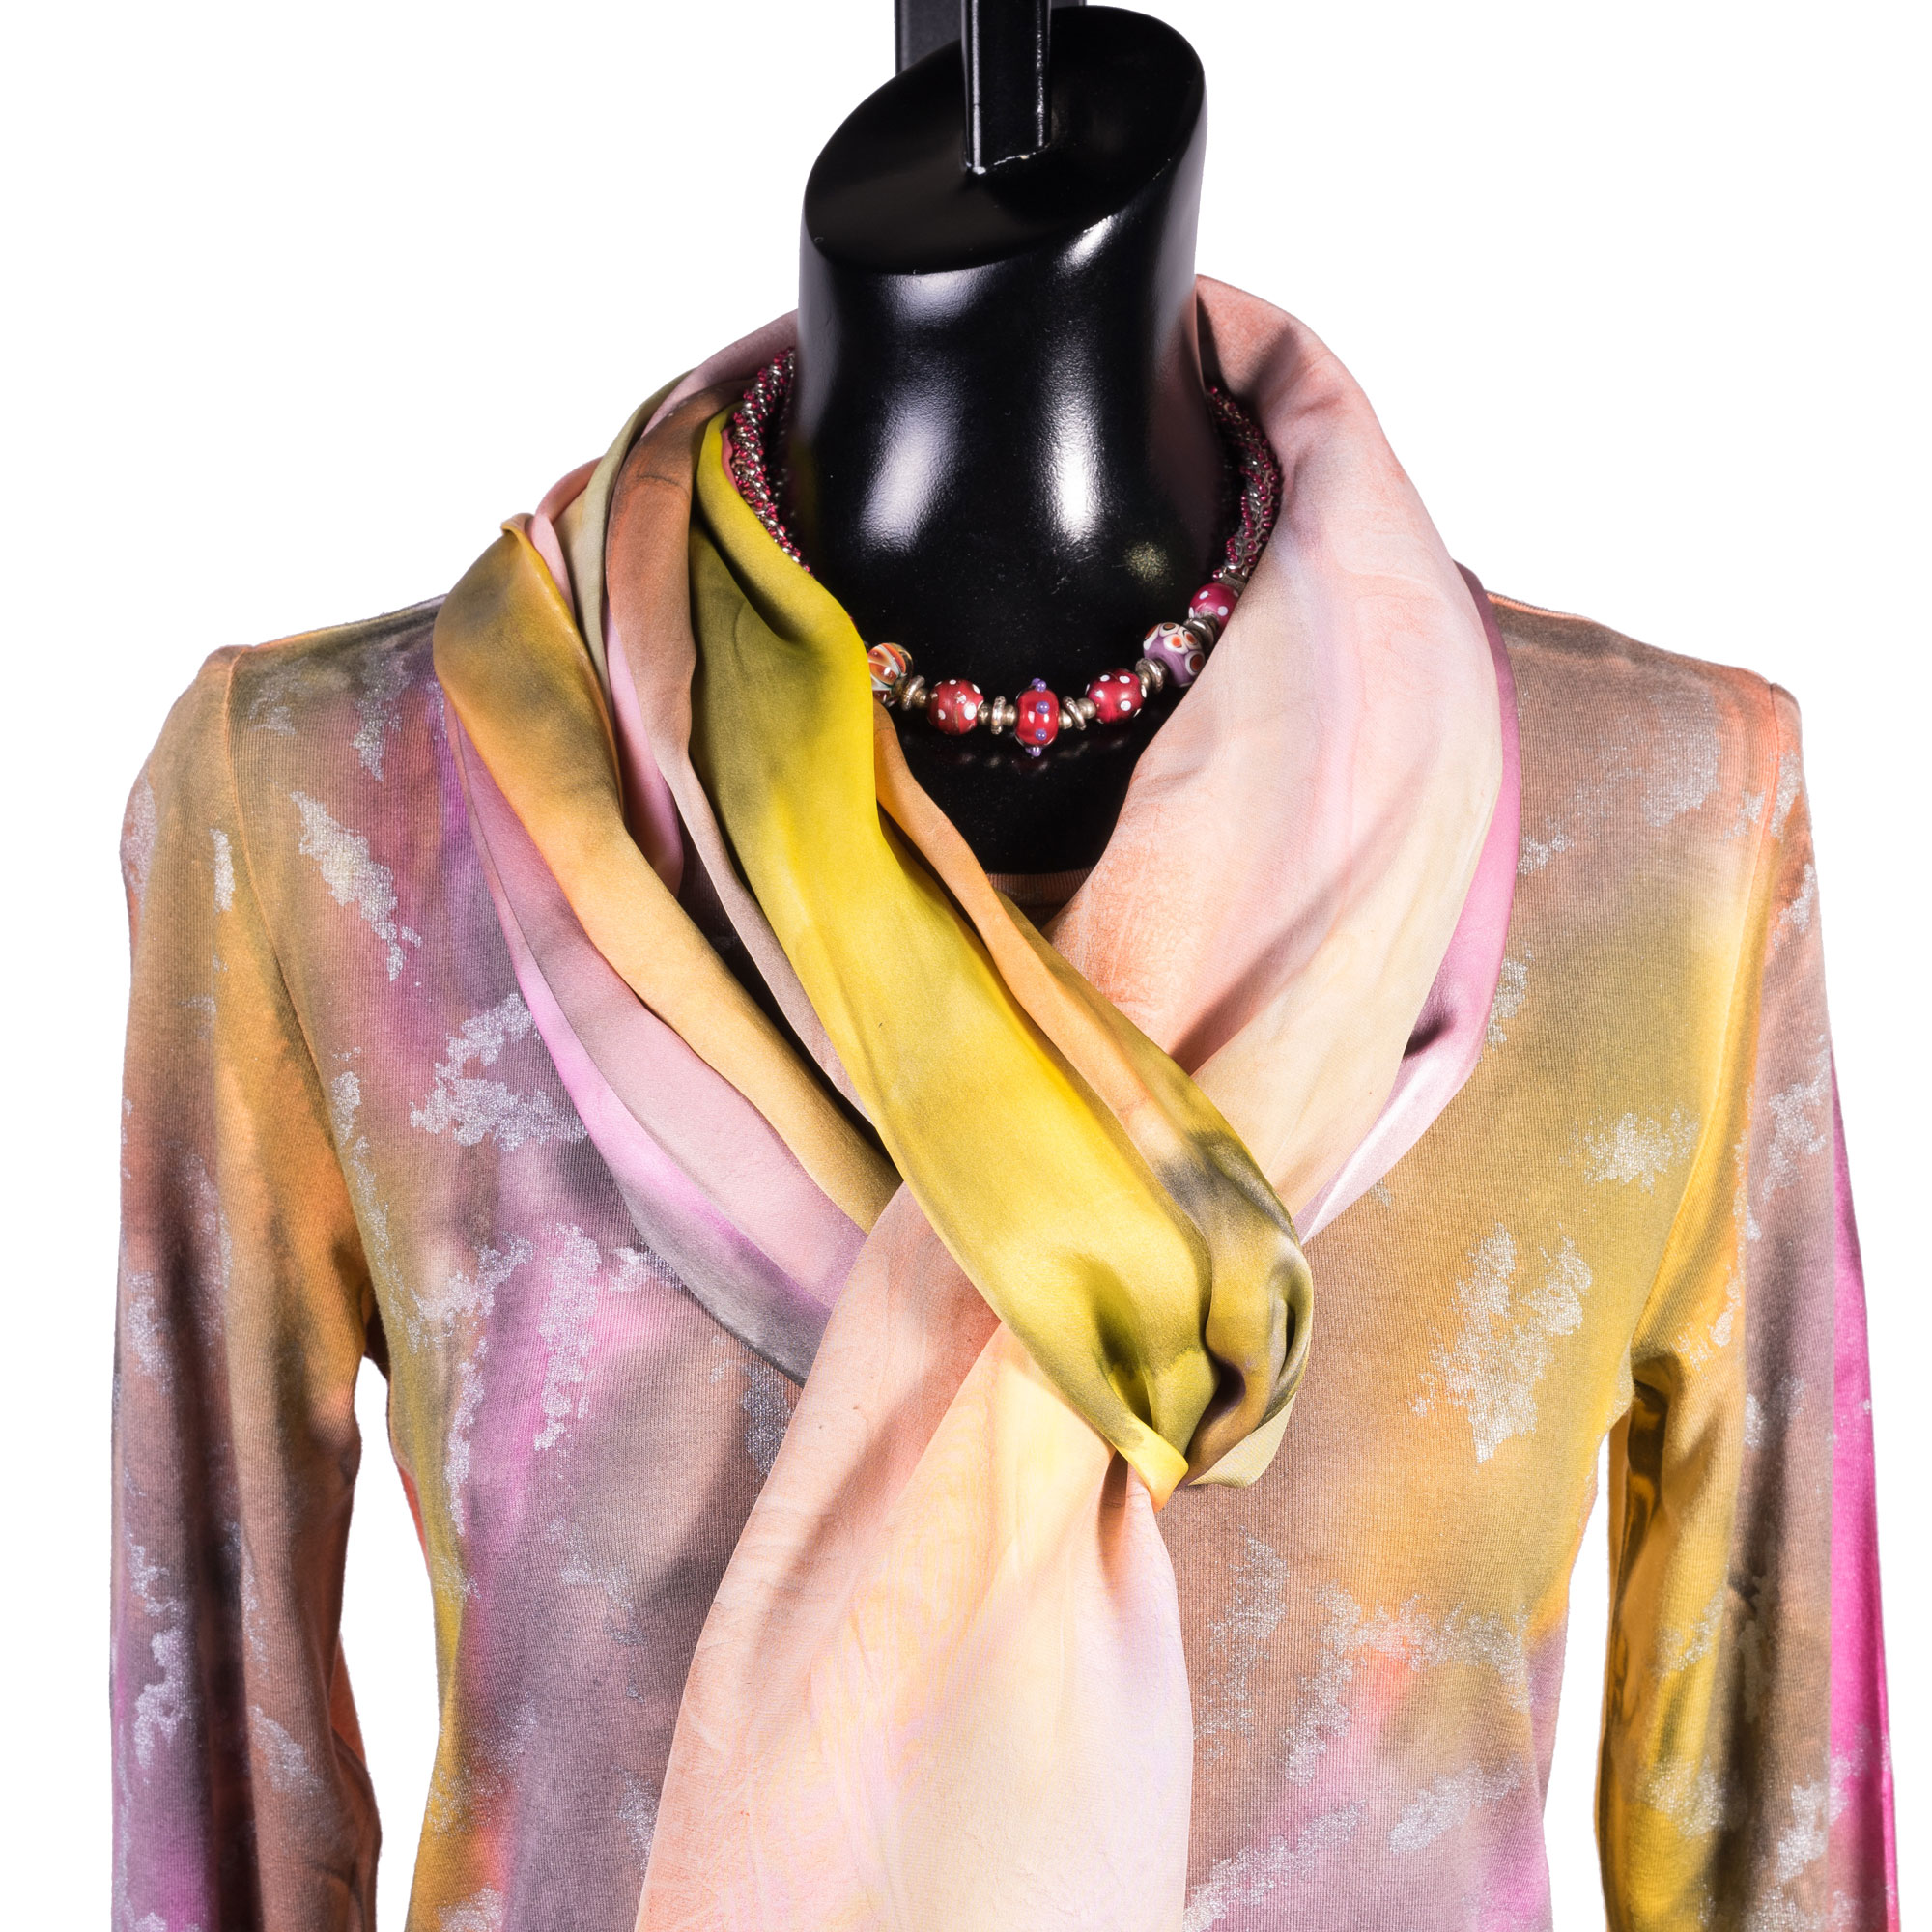 3-melarosa-wearable-art-yellowrose-detail.jpg